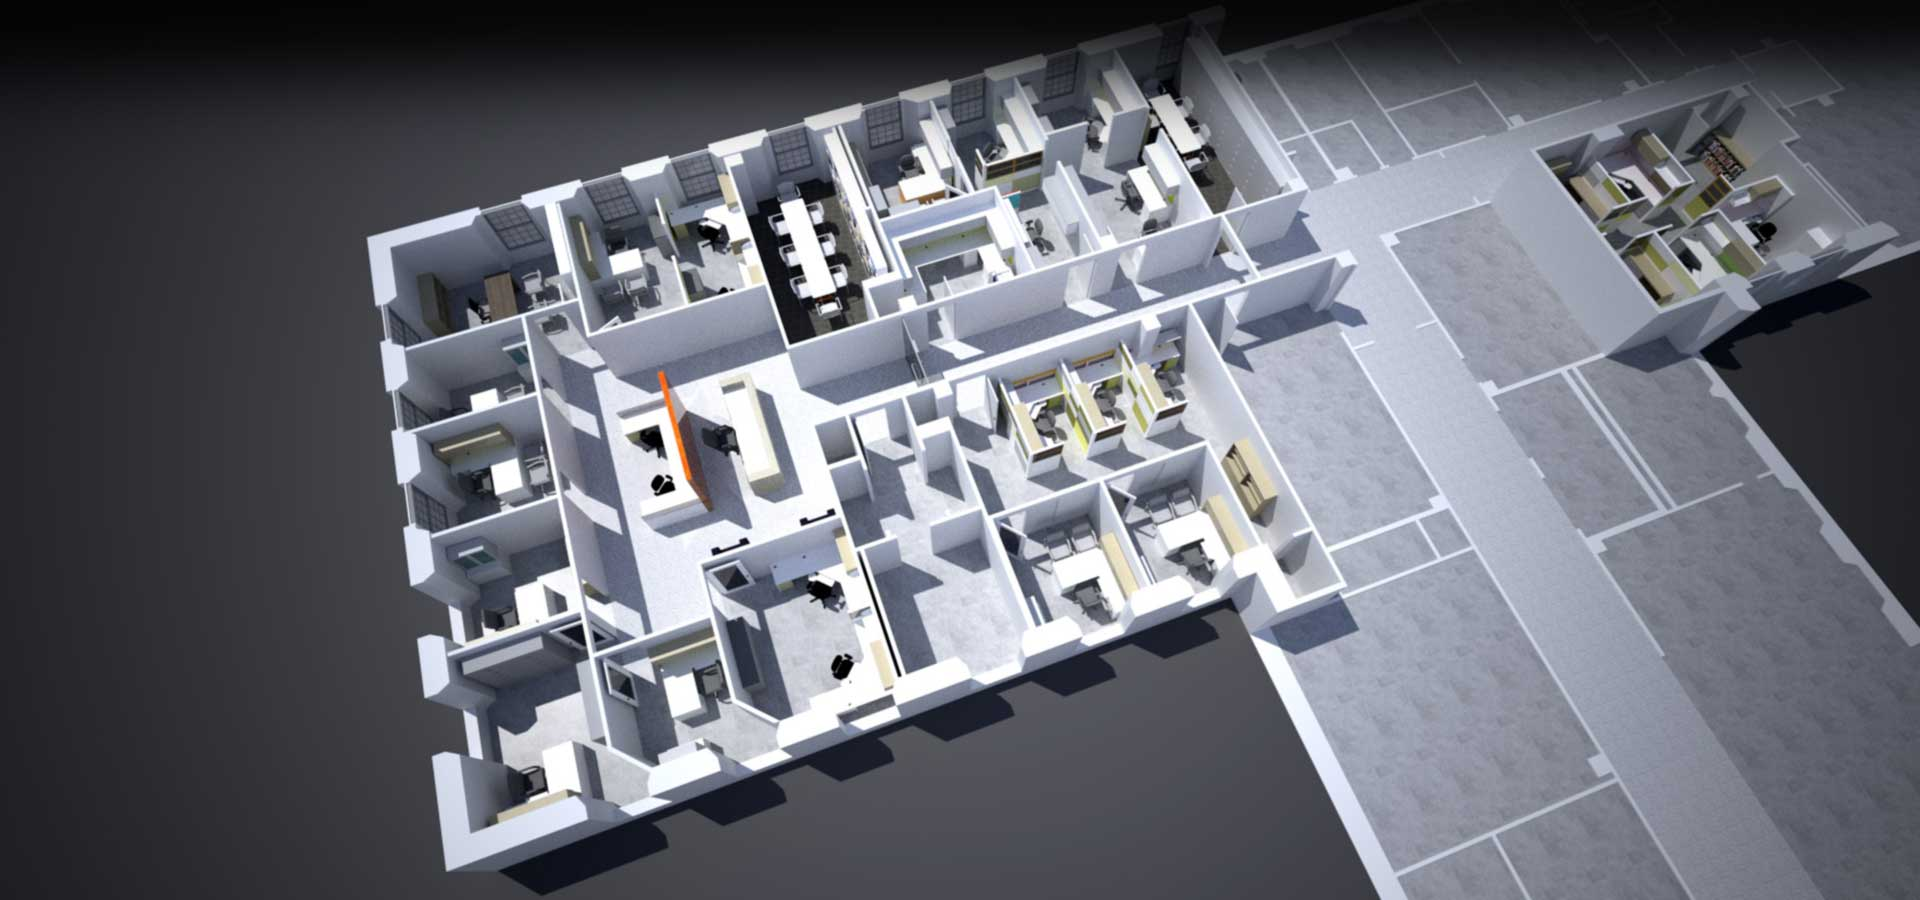 architectural design for el museo overview and architecture for nyc department of buildings zones and code compliant architecture